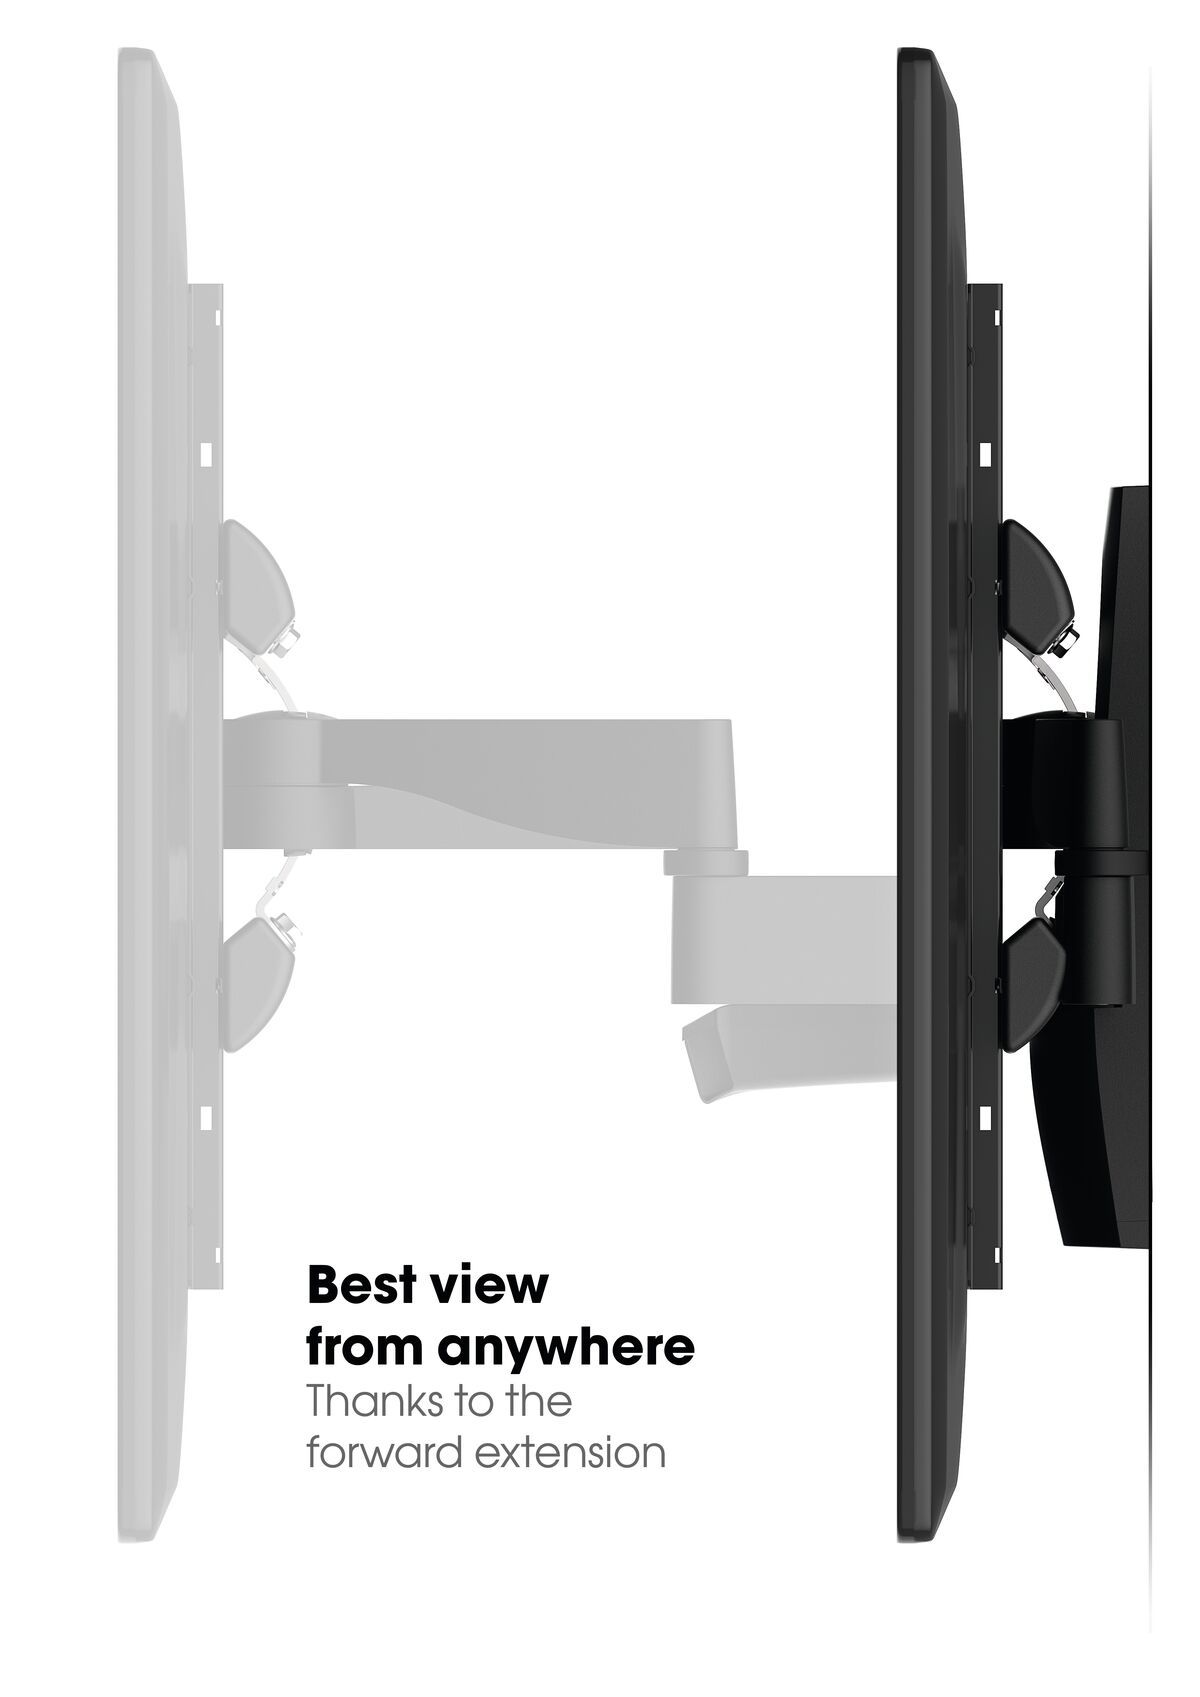 Vogel's WALL 3250 Full-Motion TV Wall Mount - Suitable for Forward and turning motion (up to 120°) - Suitable for Tilt up to 15° - Suitable for USP